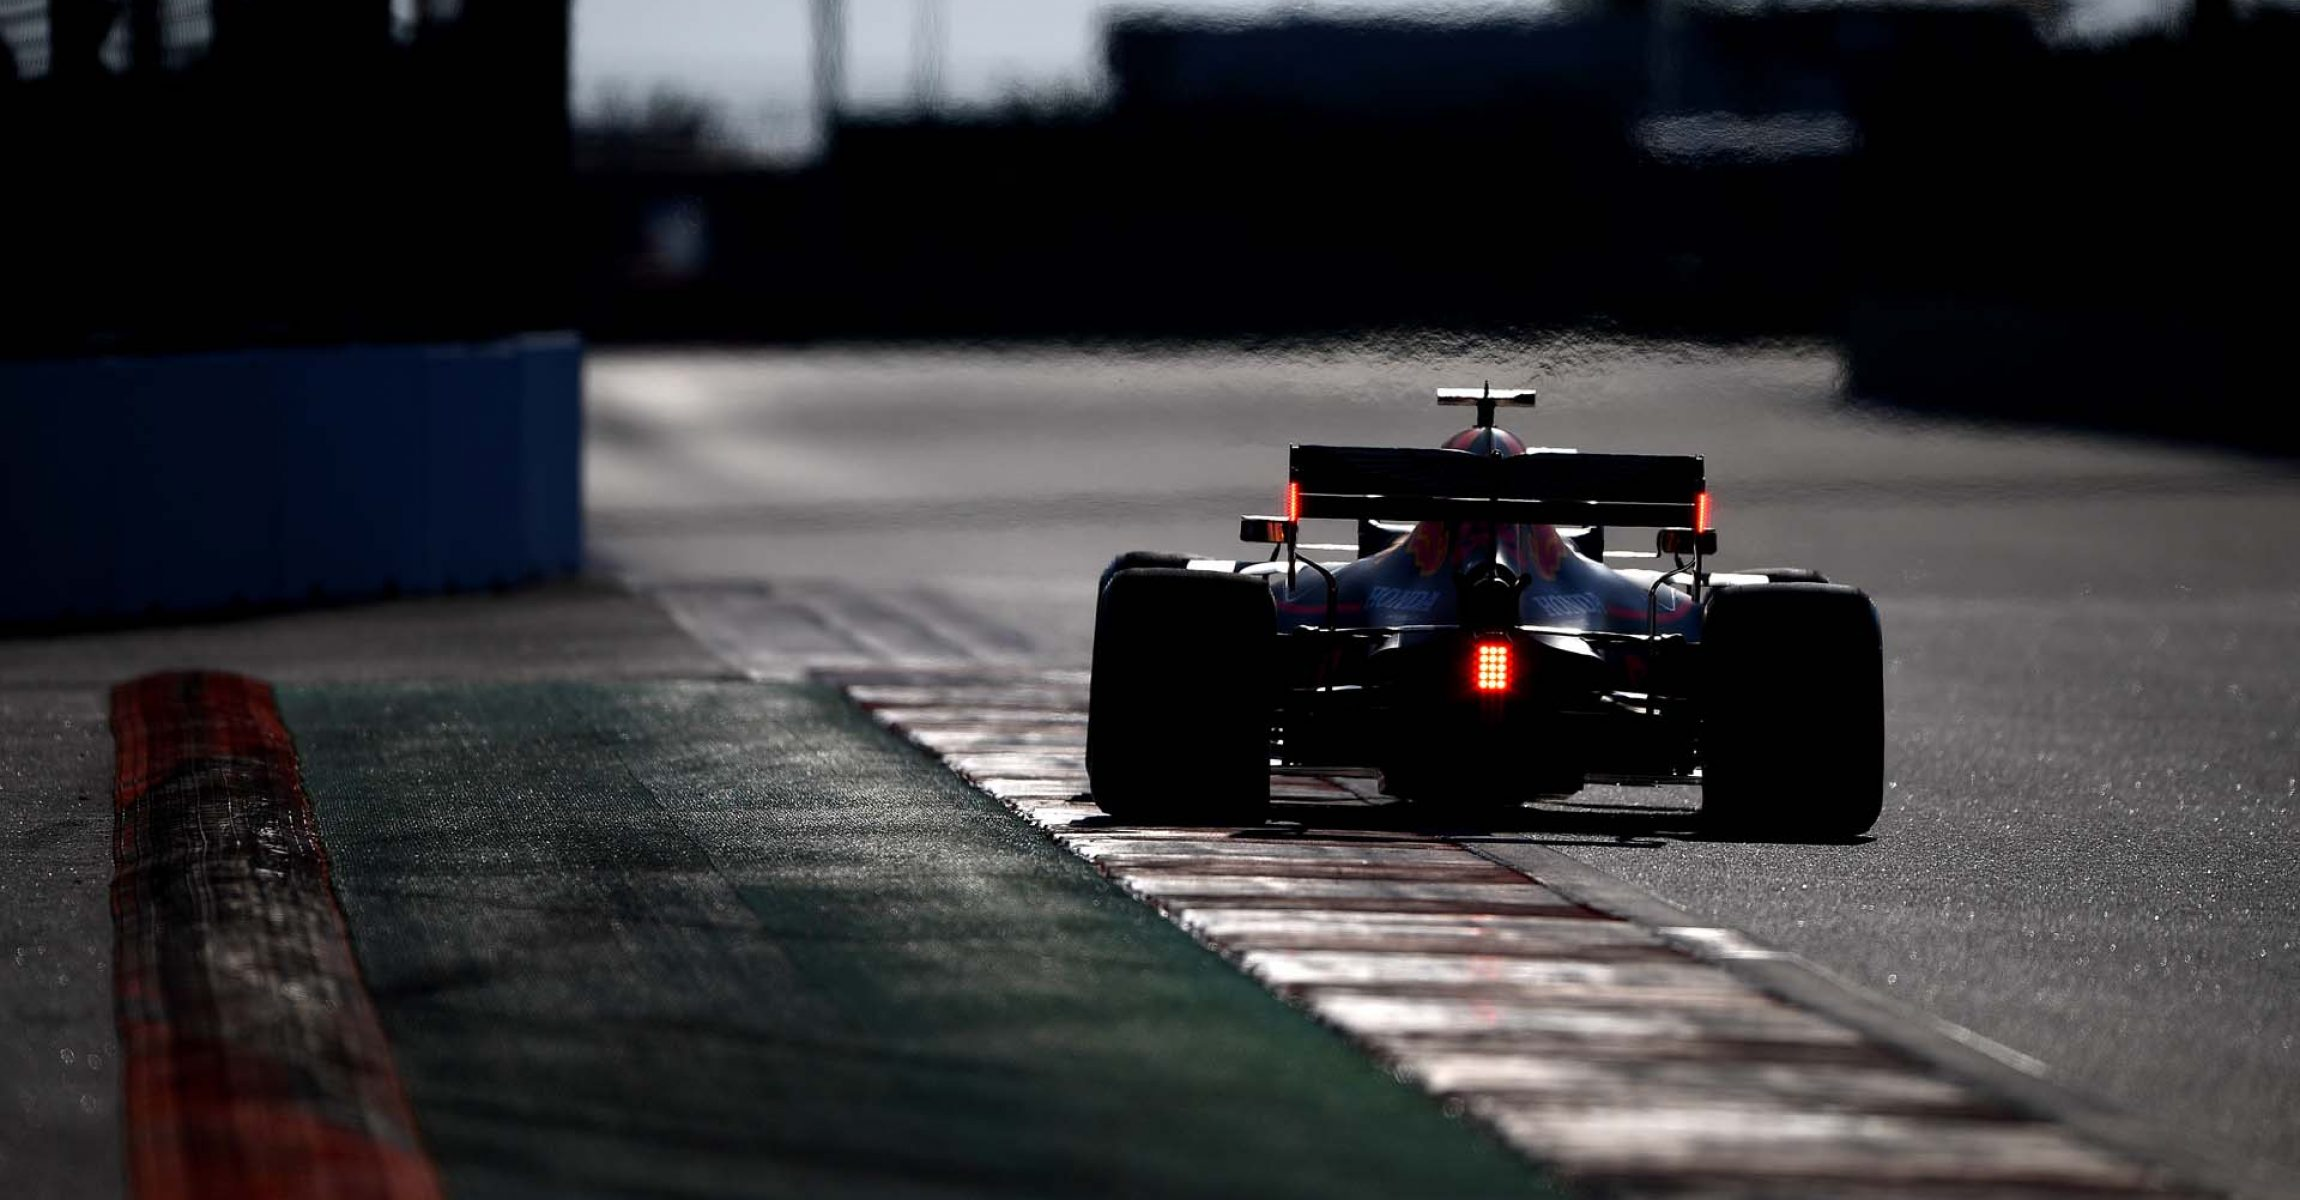 SOCHI, RUSSIA - SEPTEMBER 28: Max Verstappen of the Netherlands driving the (33) Aston Martin Red Bull Racing RB15 on track during qualifying for the F1 Grand Prix of Russia at Sochi Autodrom on September 28, 2019 in Sochi, Russia. (Photo by Clive Mason/Getty Images) // Getty Images / Red Bull Content Pool  // AP-21Q852J712111 // Usage for editorial use only //